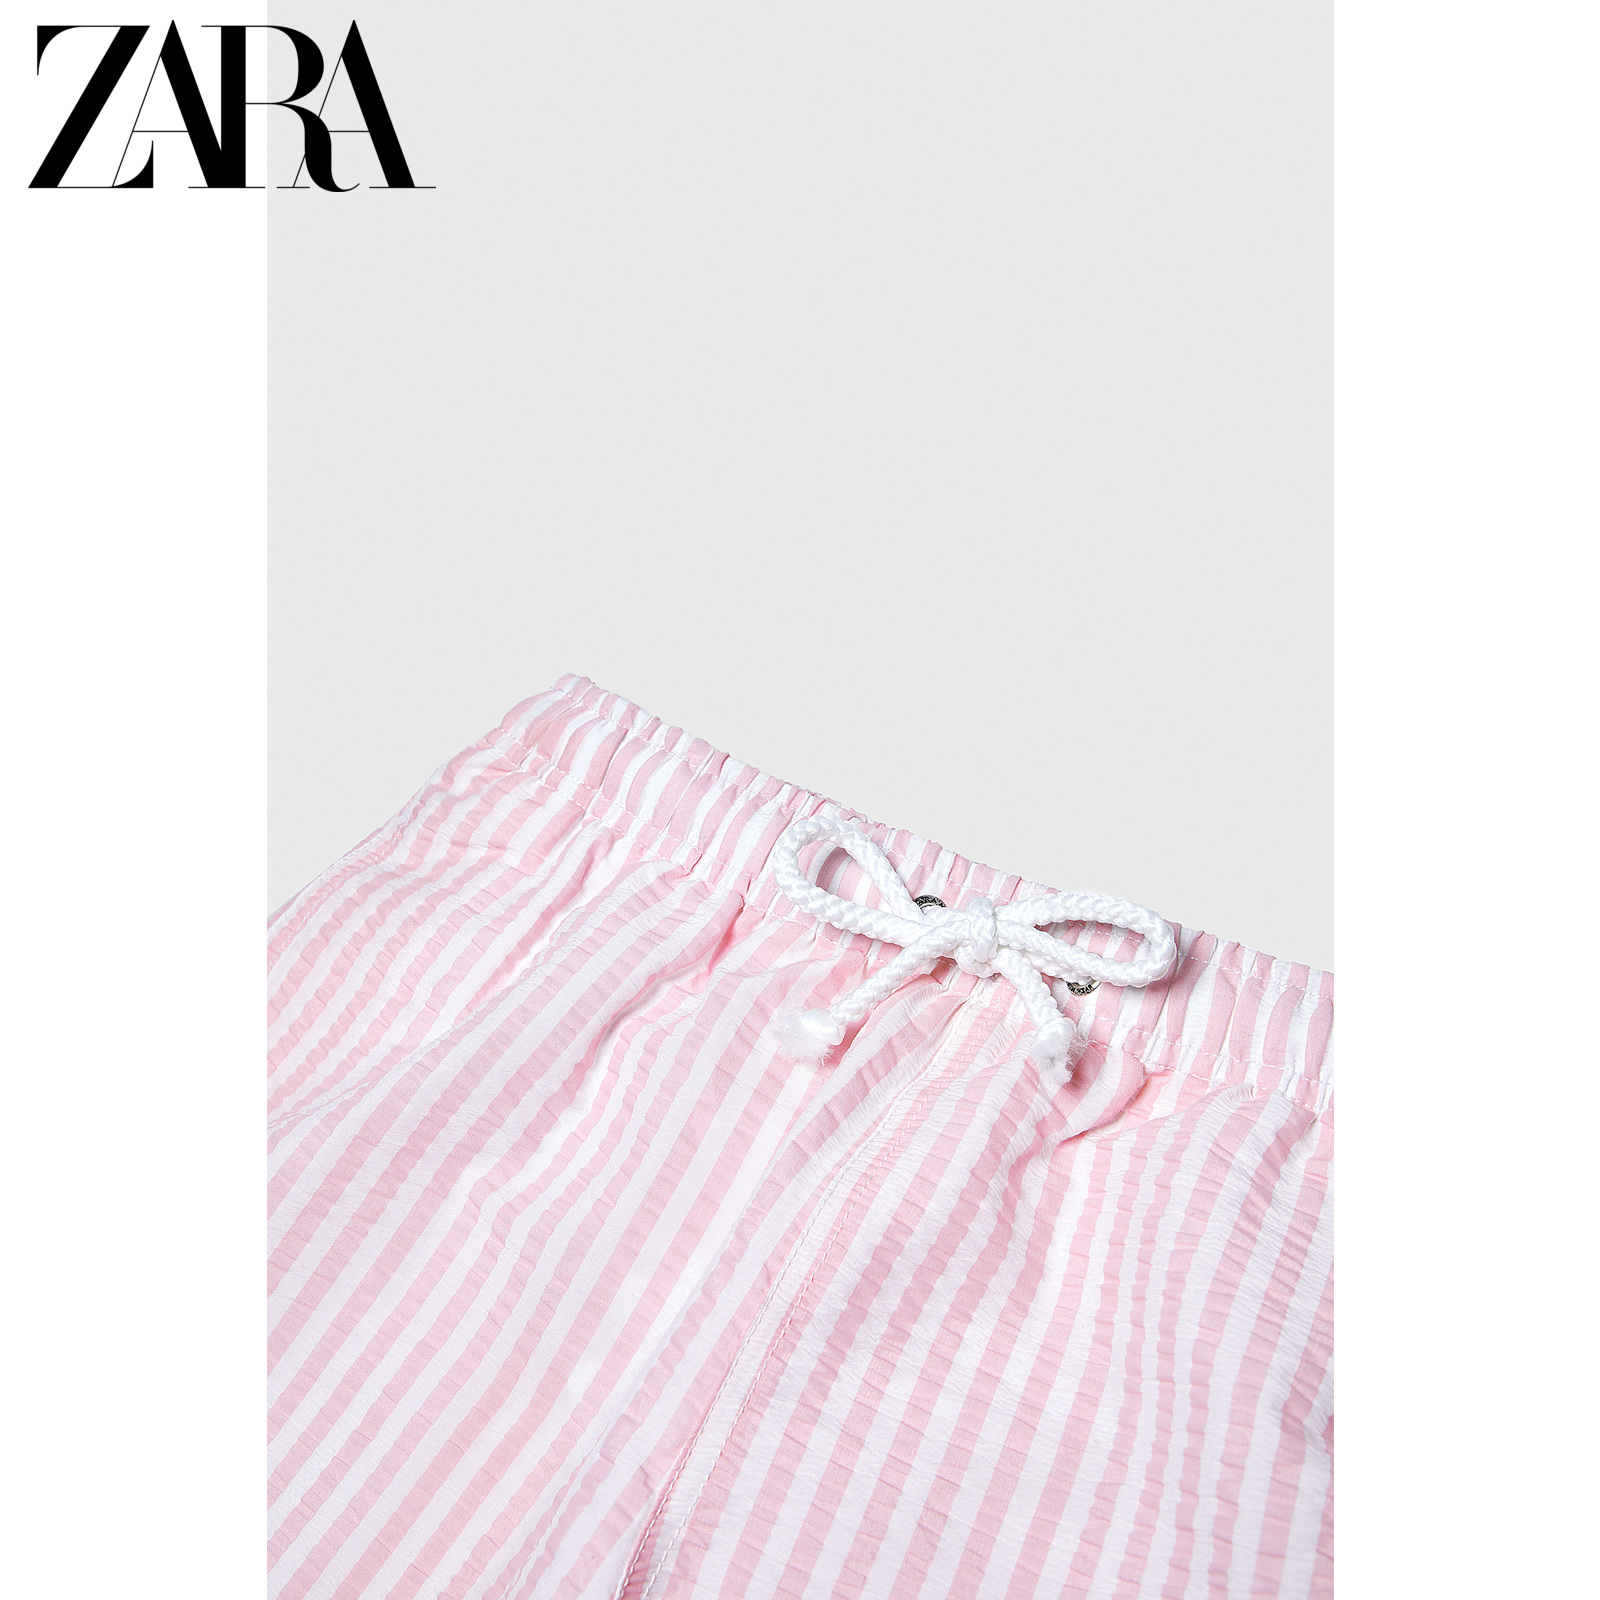 Zara new men's foam texture swimwear 08574404620